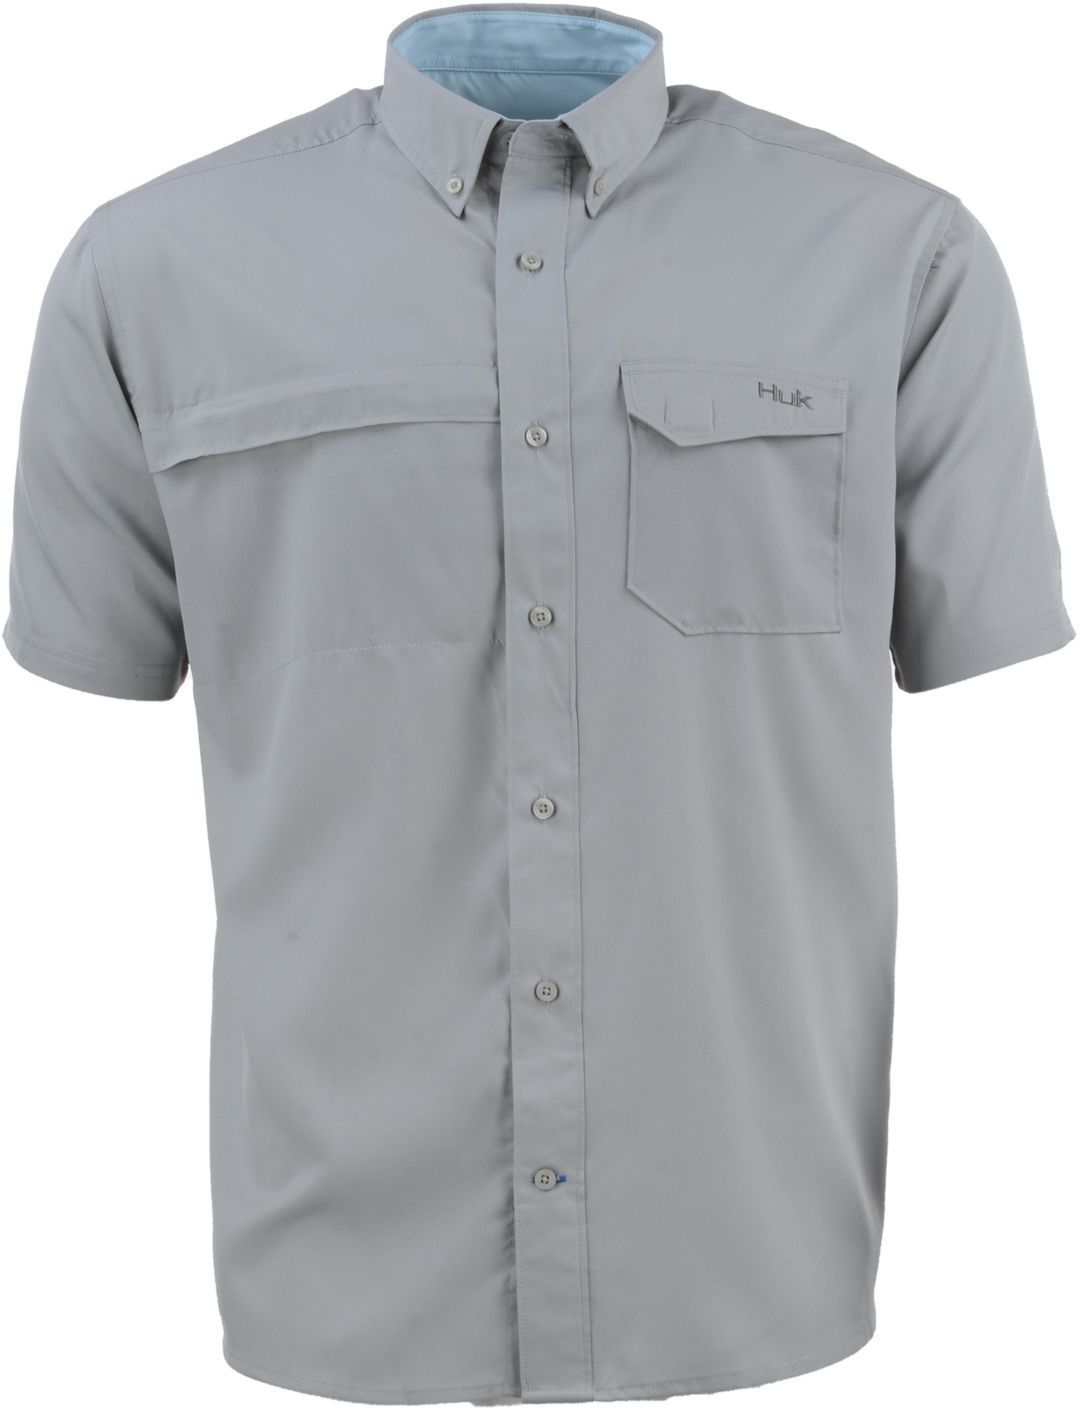 42ca9abcc HUK Men's Tide Point Woven Solid Button Down Short Sleeve Shirt ...